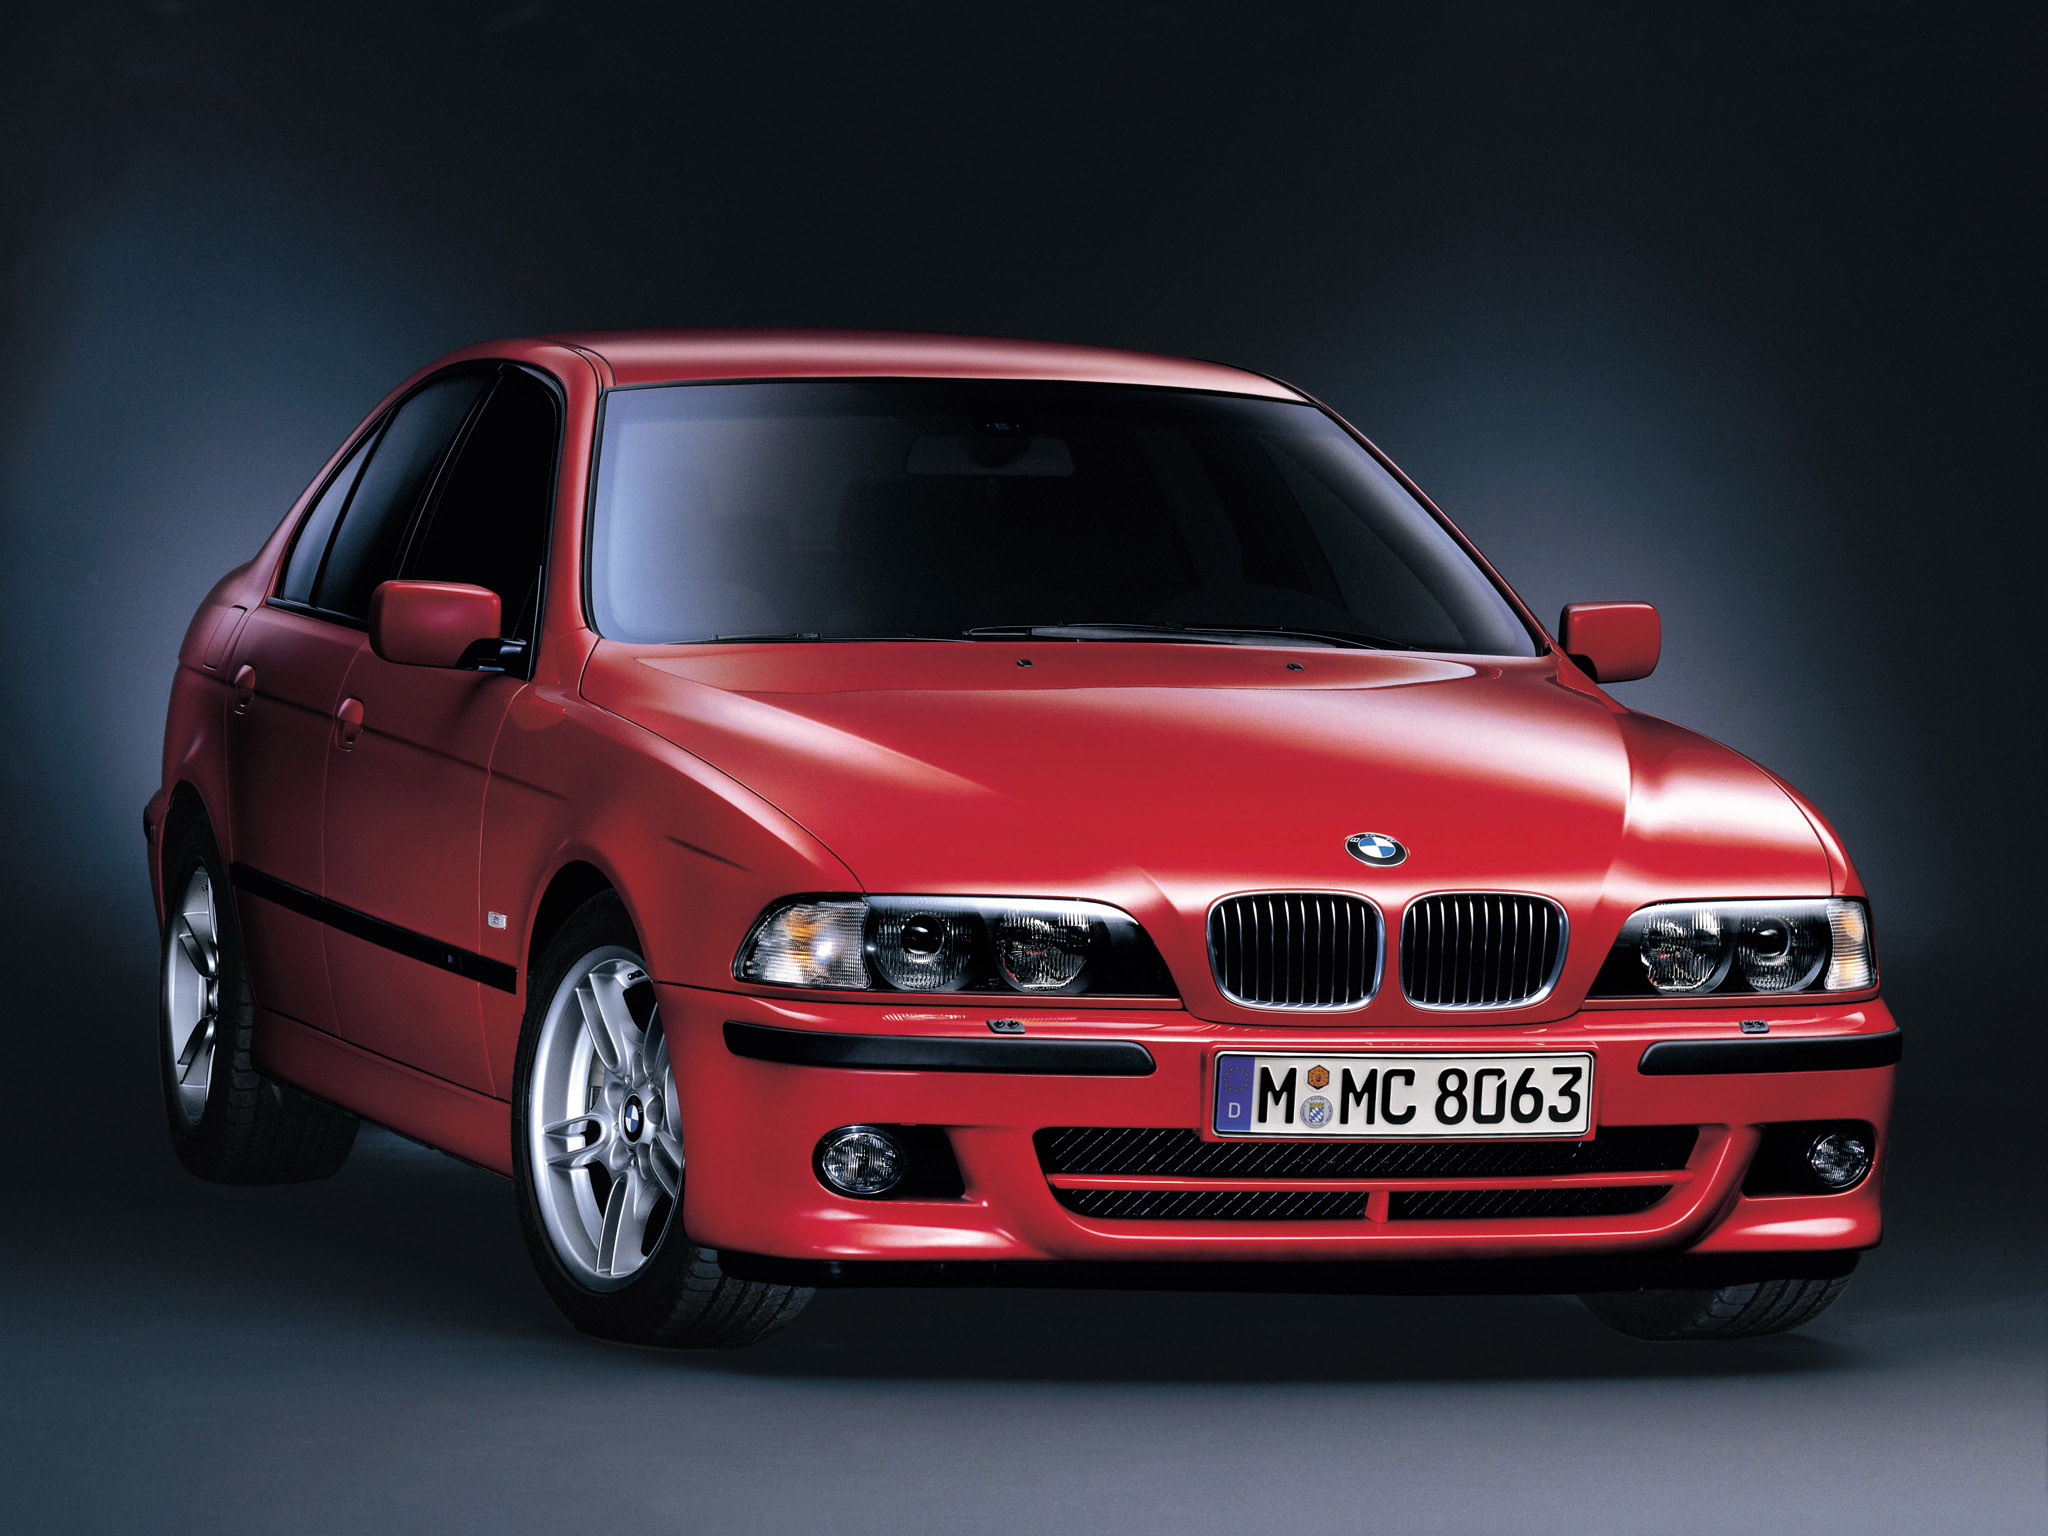 2002 bmw 5er e39 pictures information and specs auto. Black Bedroom Furniture Sets. Home Design Ideas